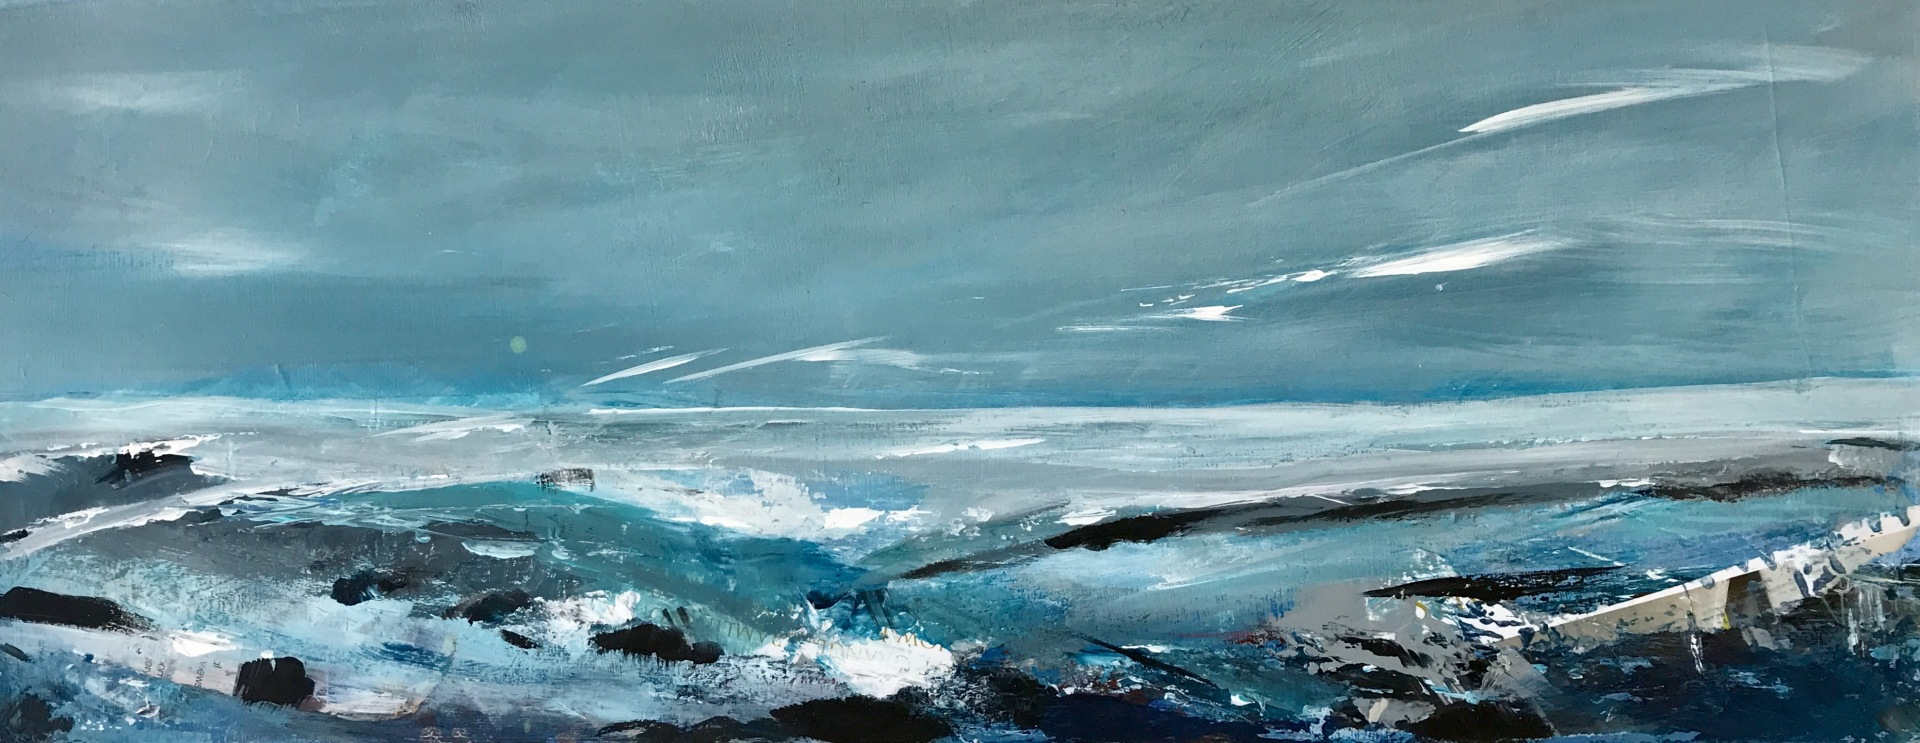 Craster seas, Northumbria - 51 x 20 cms